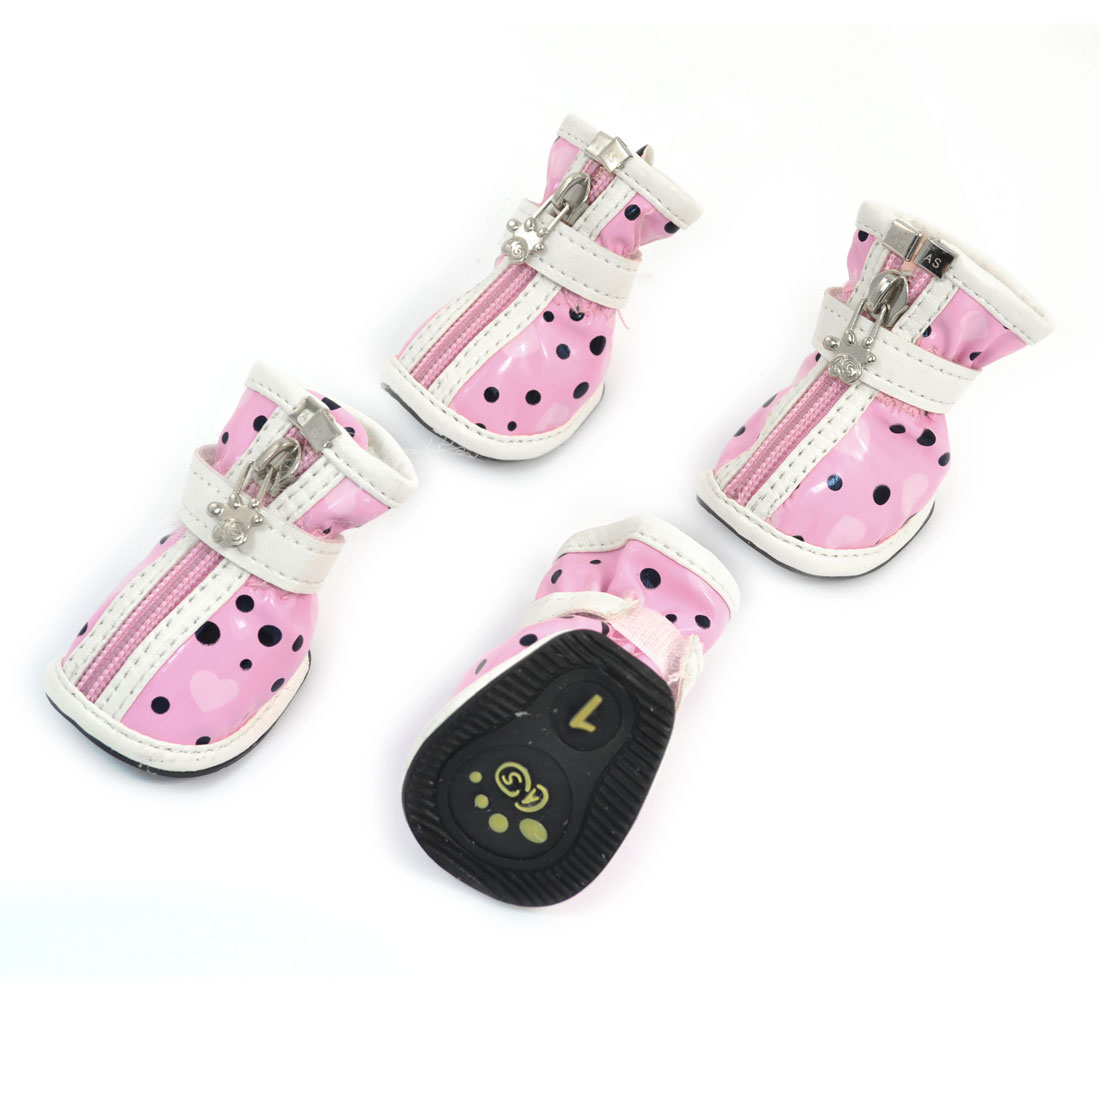 2 Pair Hook Loop Closure Zip Up Pet Poodle Doggy Shoes Boots Booties Pink White Size XXS